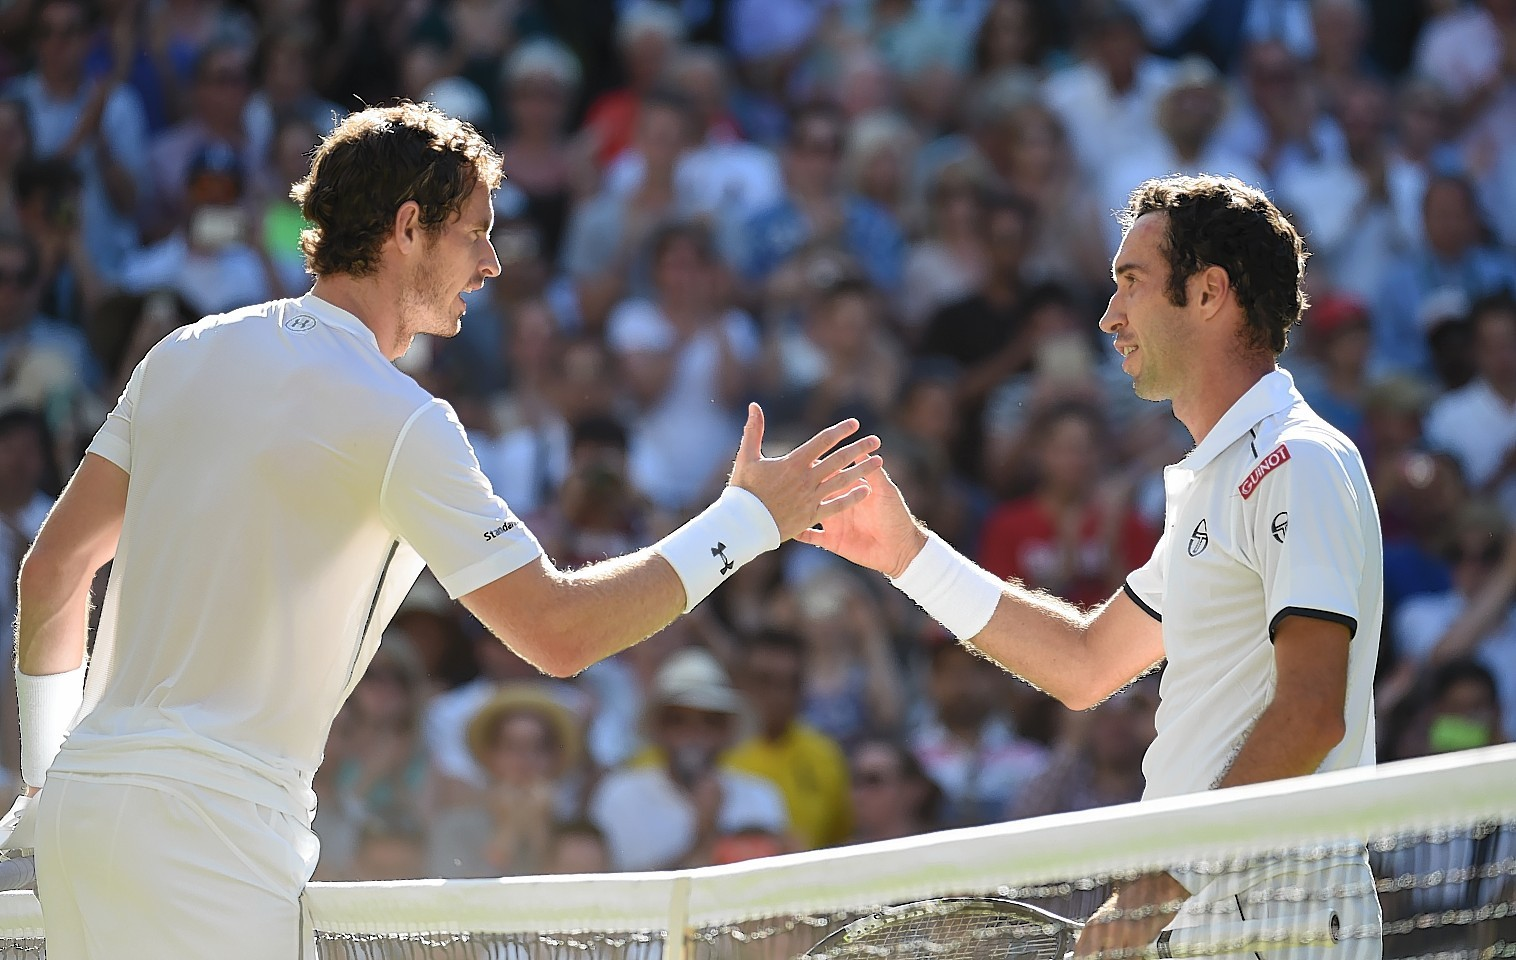 Andy Murray shakes hands with Mikhail Kukushkin after defeating him by three straight sets.